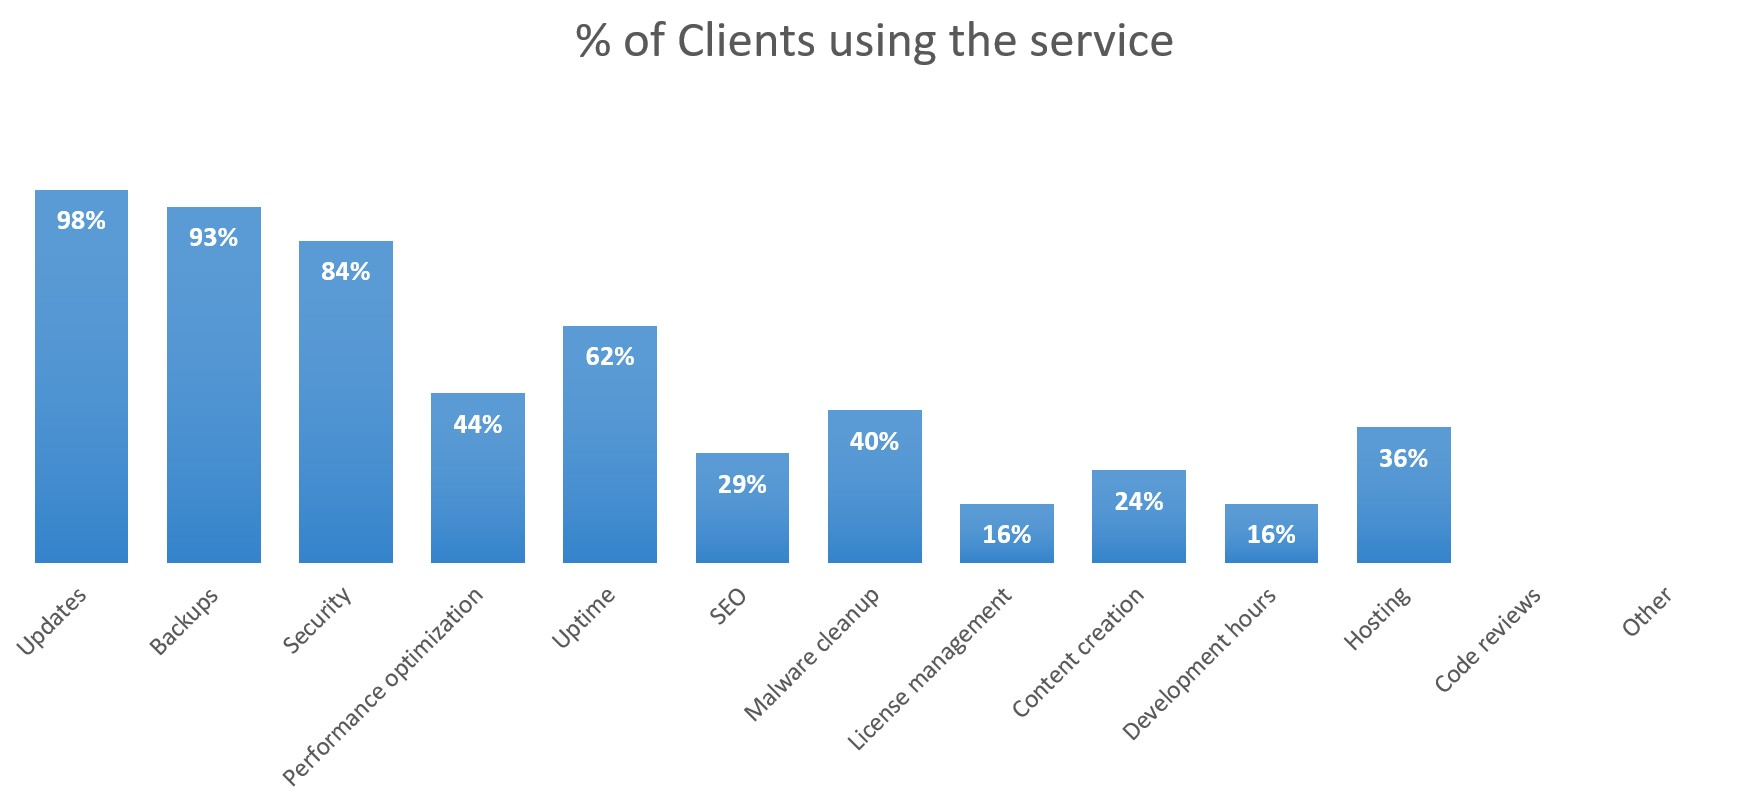 Single tier: Percentage of clients using the service